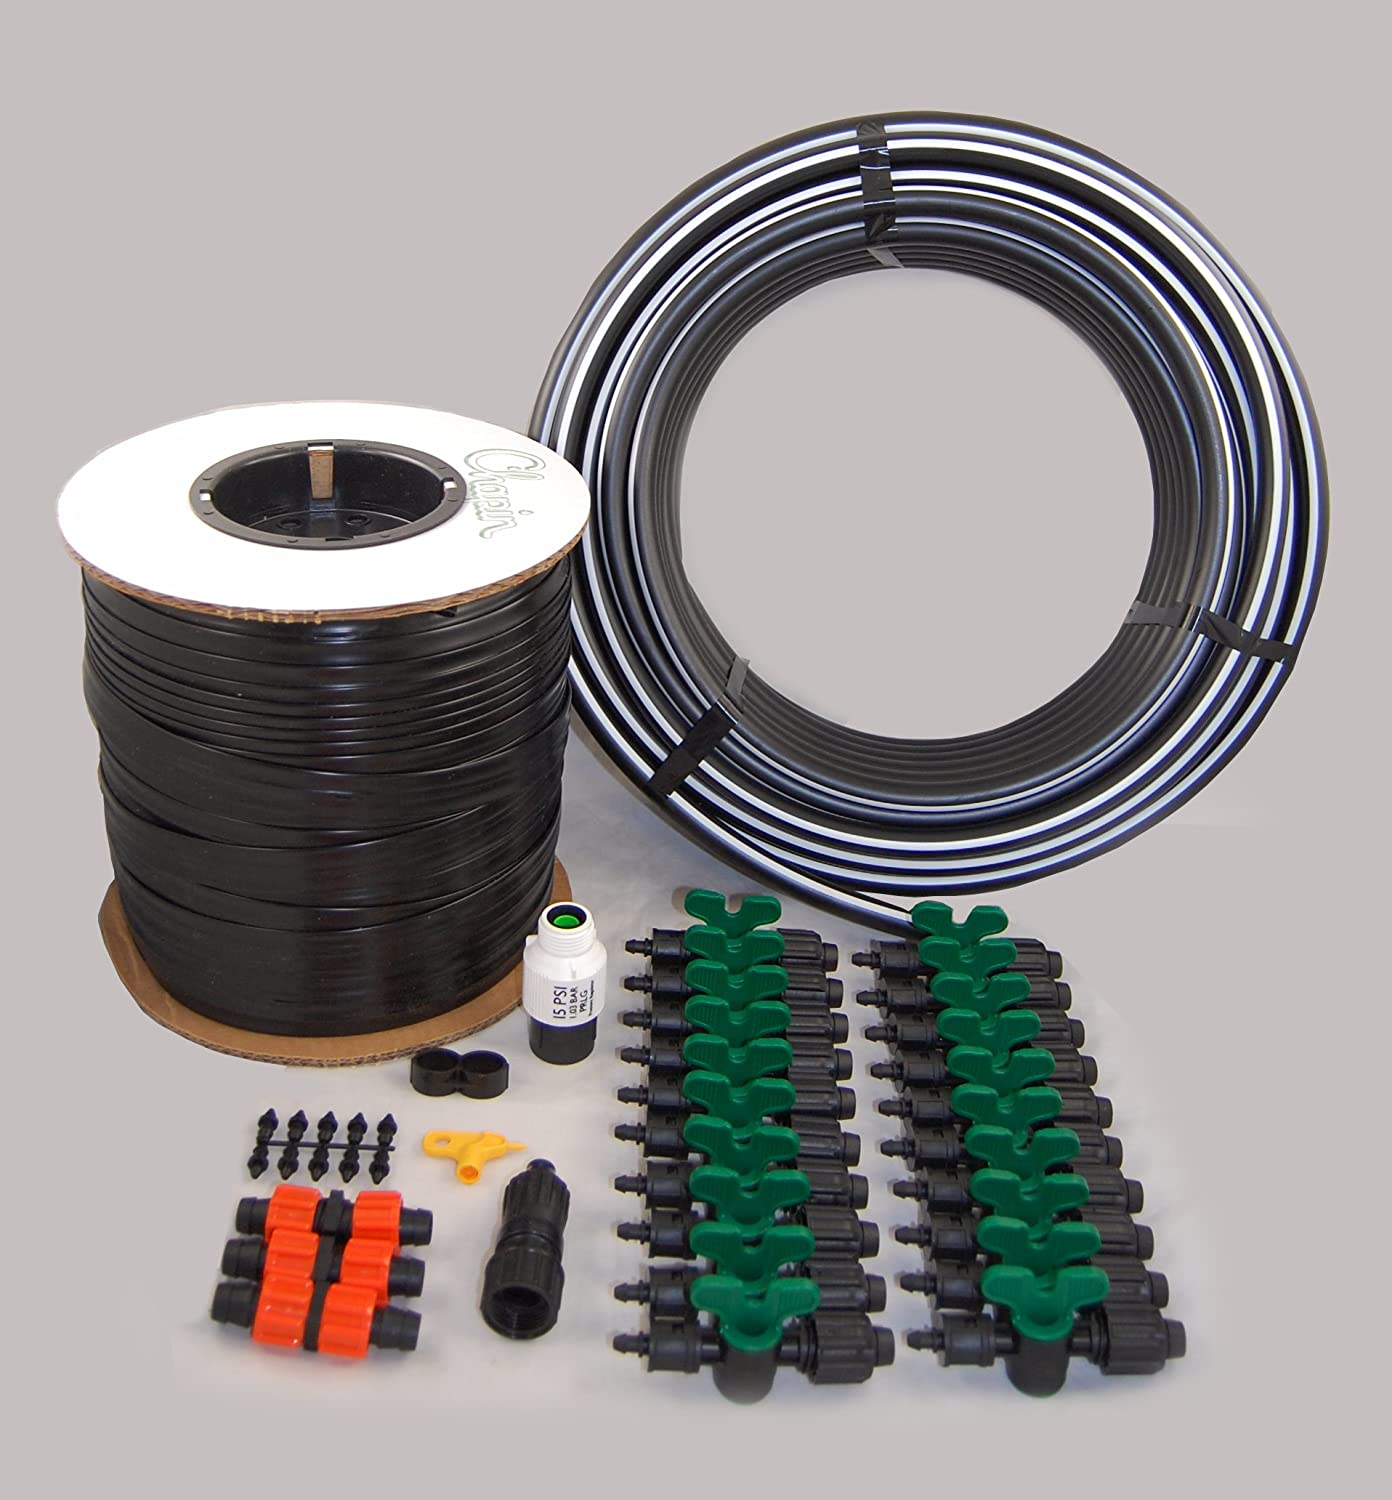 ve able garden drip kit 20 rows x 50 ft watering